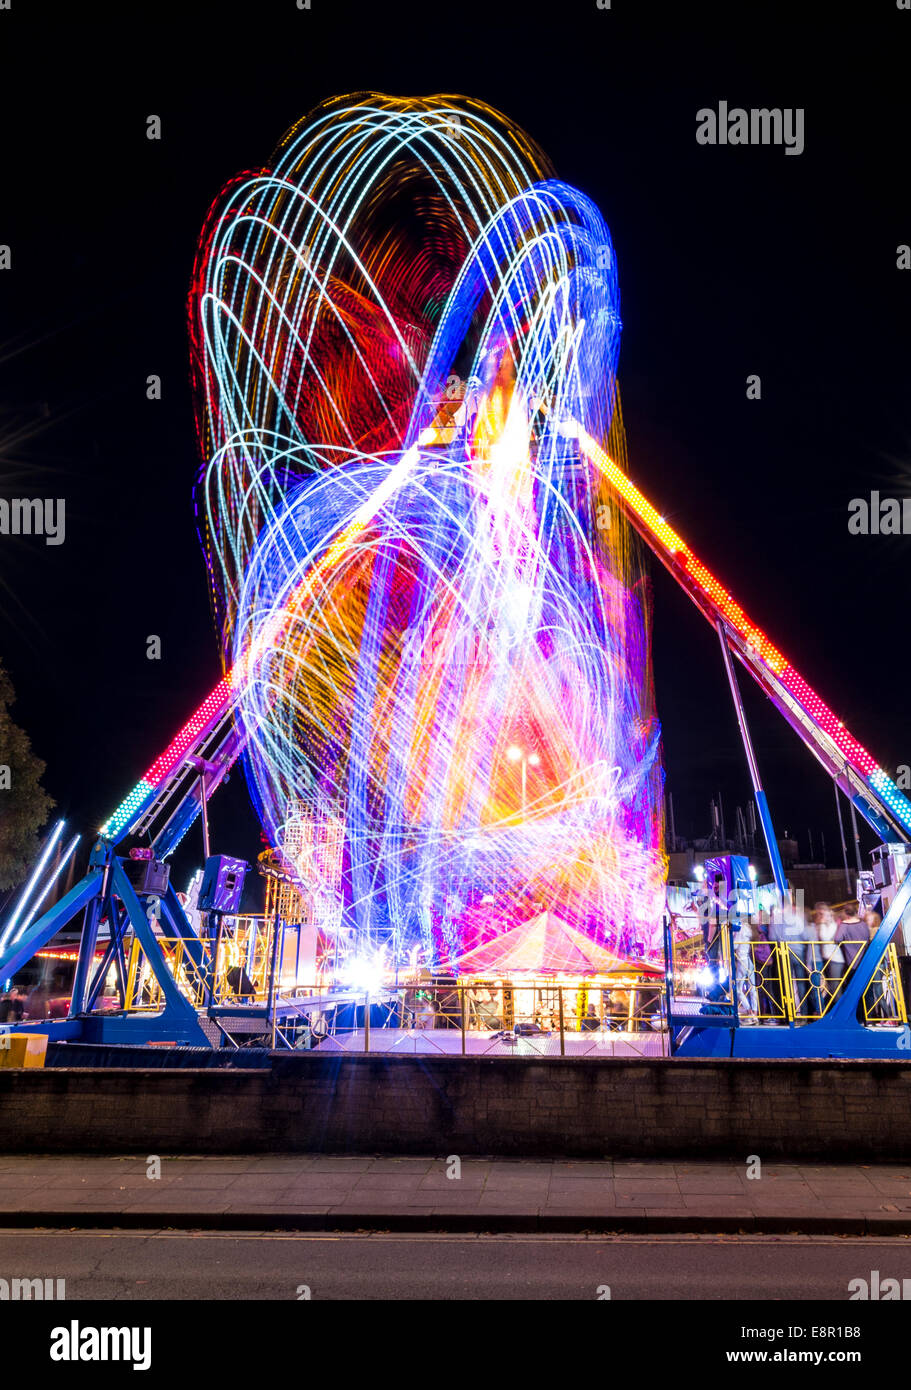 These are picture taken from the recent Fair in Cirencester England .This is called the Mop Fair consisting of fair - Stock Image